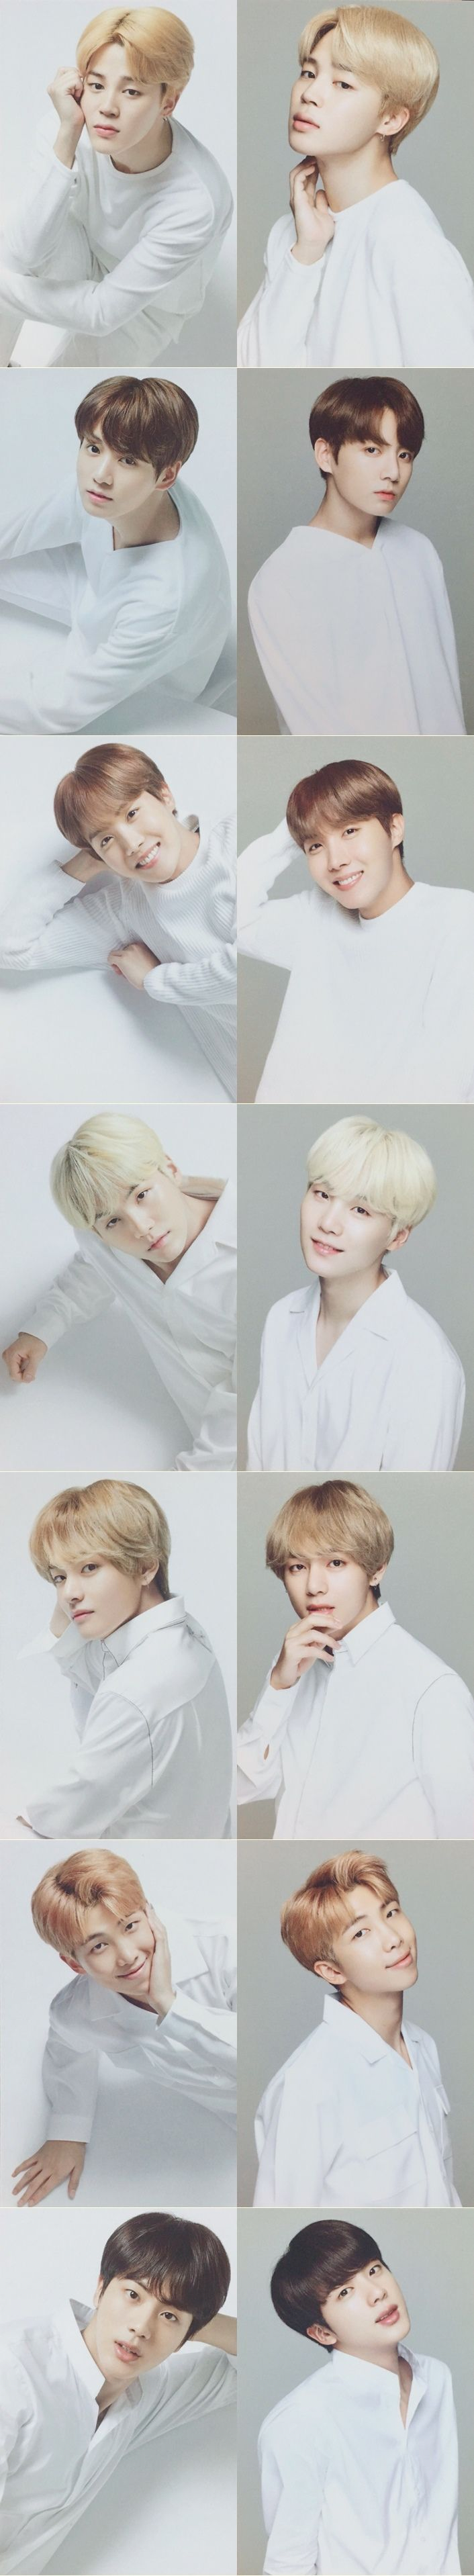 I didn't want to post it because I don't like how Jimin's and Tae's hair look in the 1st pics on the left but oh well